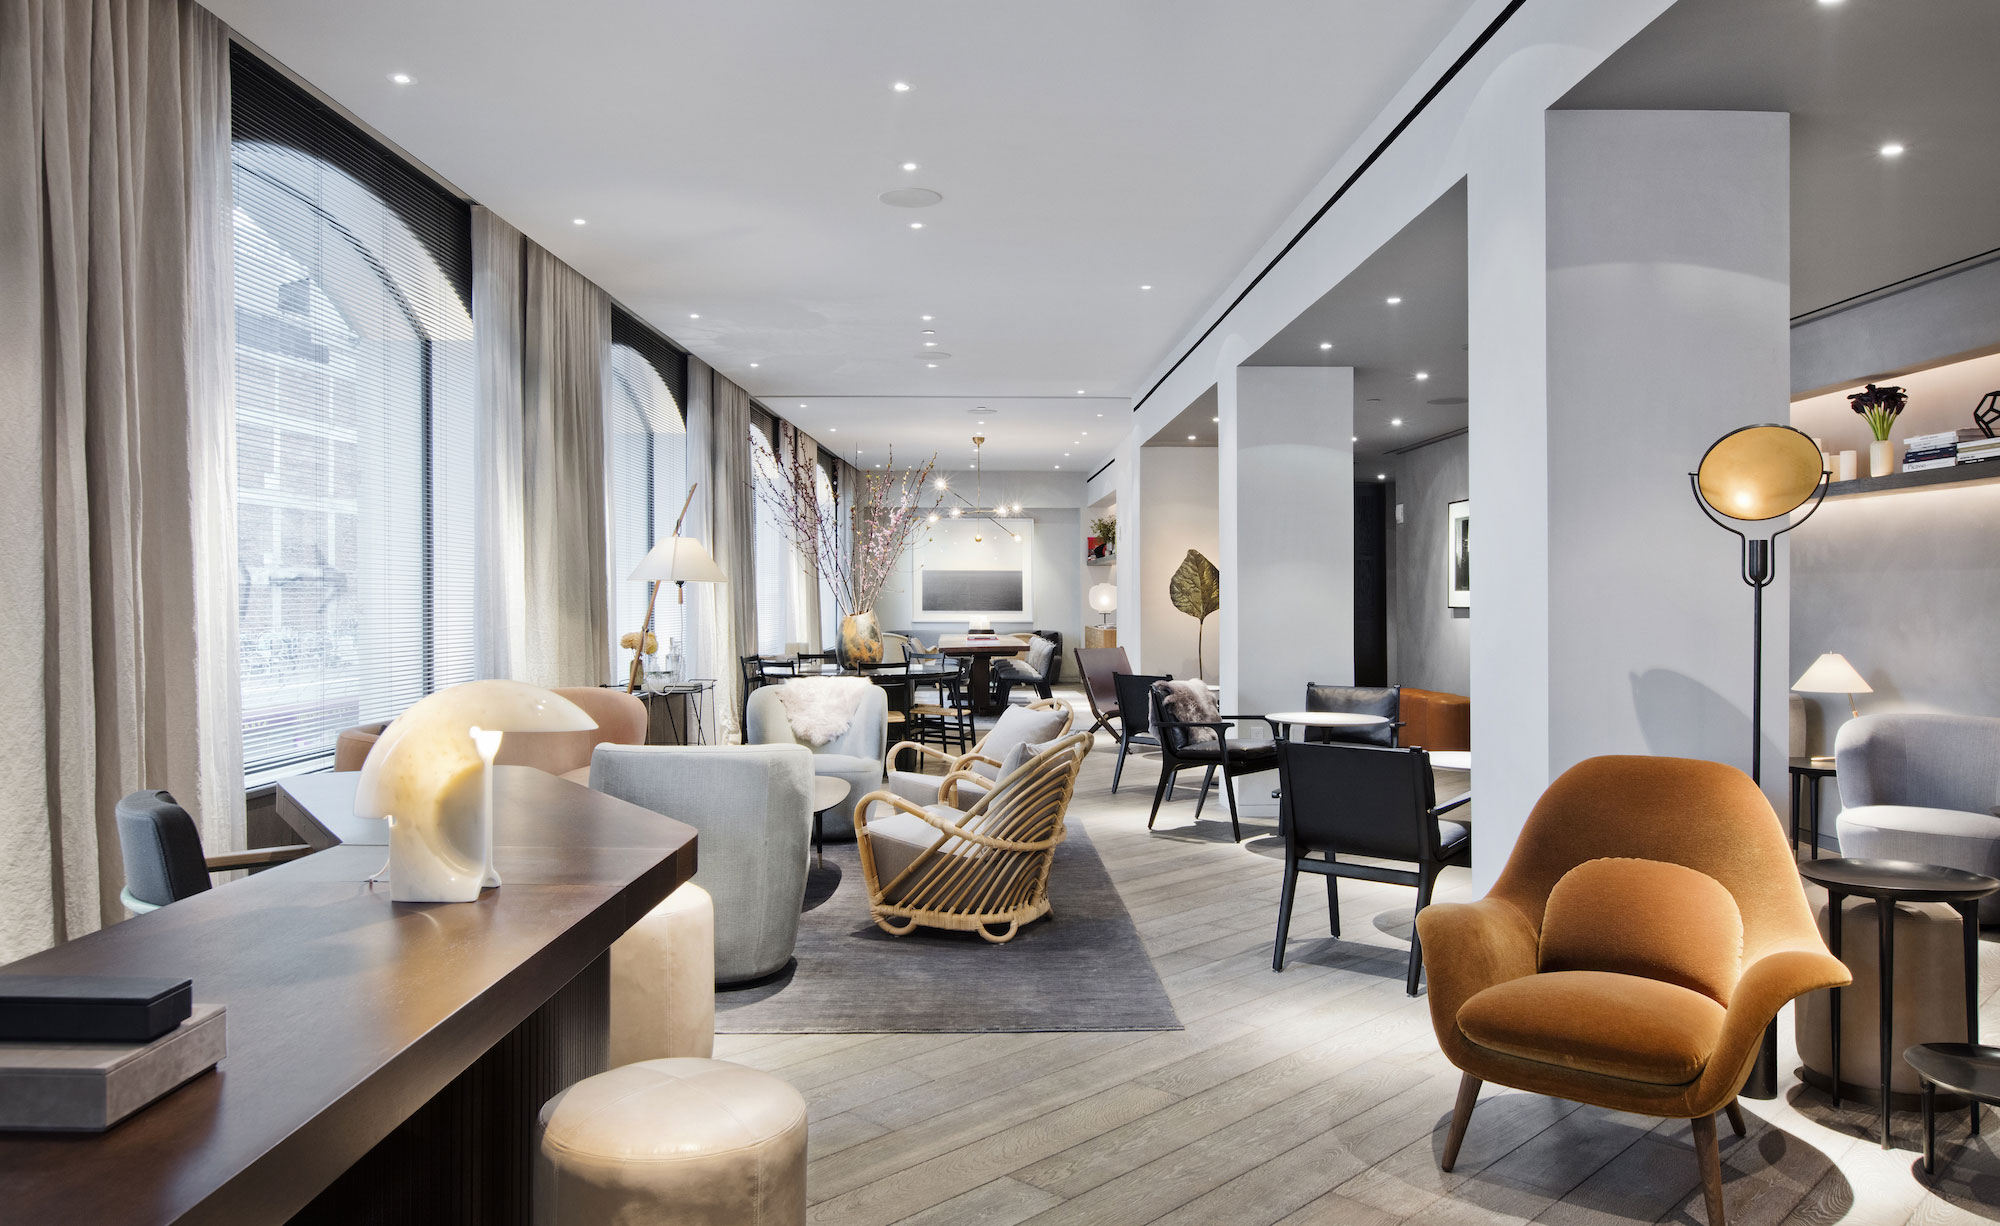 11 Howard Latest Contemporary Luxury Hotel Opens In Soho New York Cpp Luxury